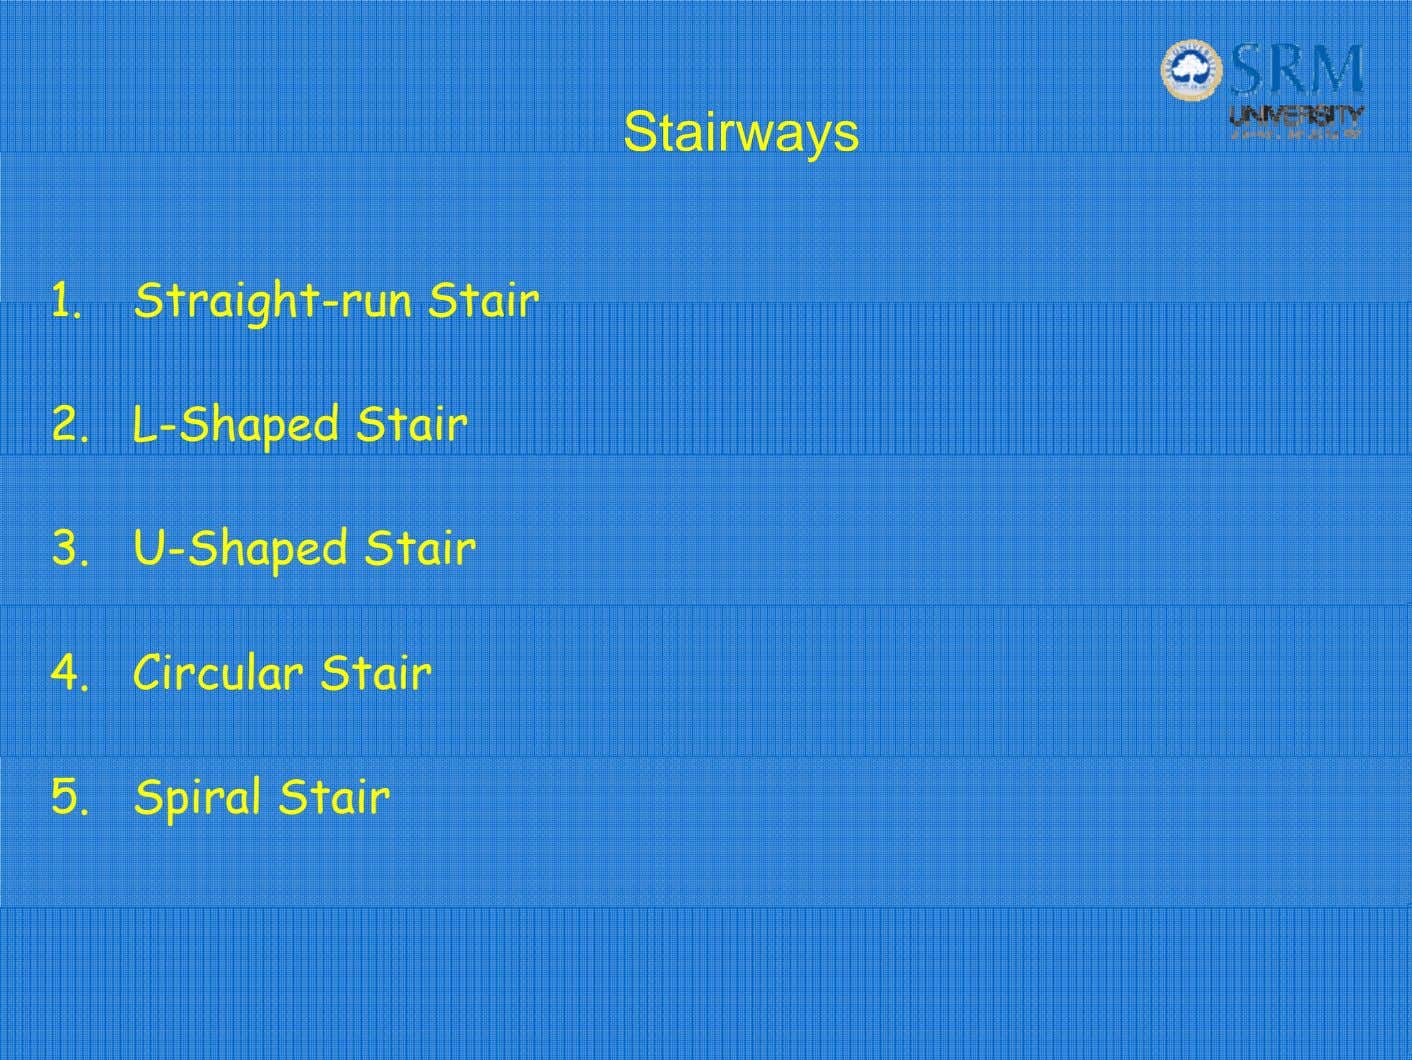 Stairways 1. Straight-run Stair 2. L-Shaped Stair 3. U-Shaped Stair 4. Circular Stair 5. Spiral